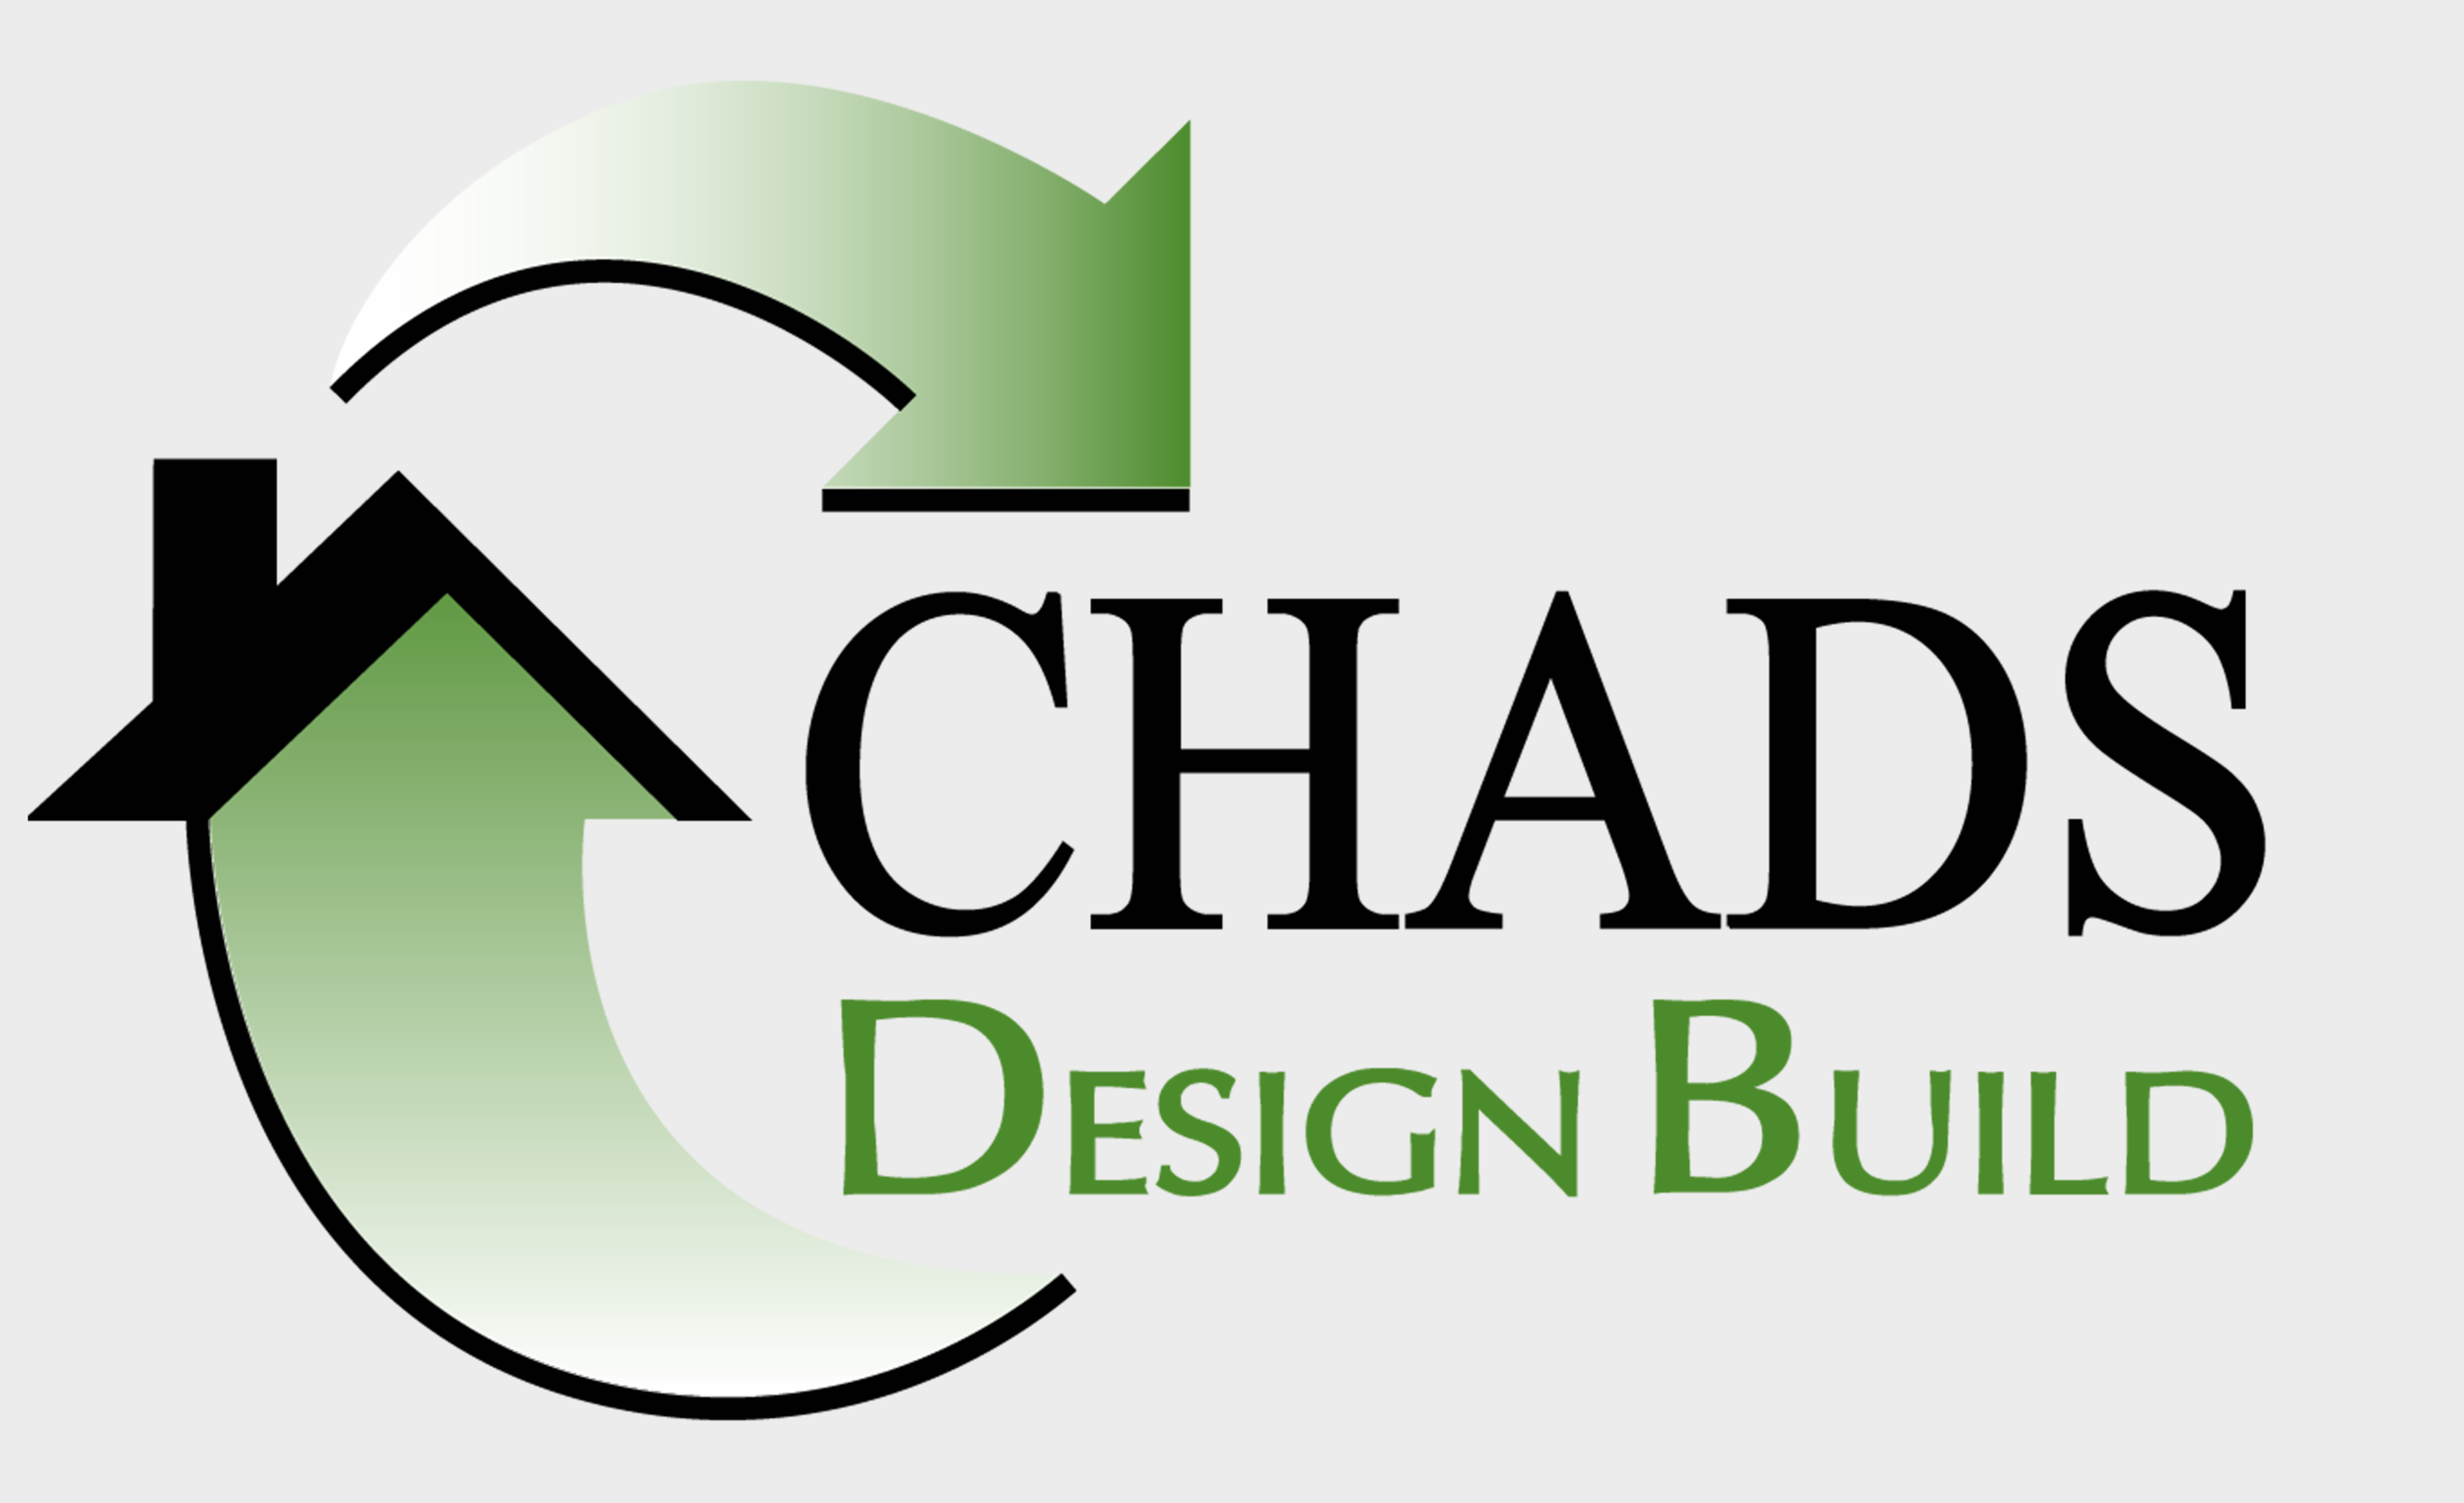 Chad's Design Build logo